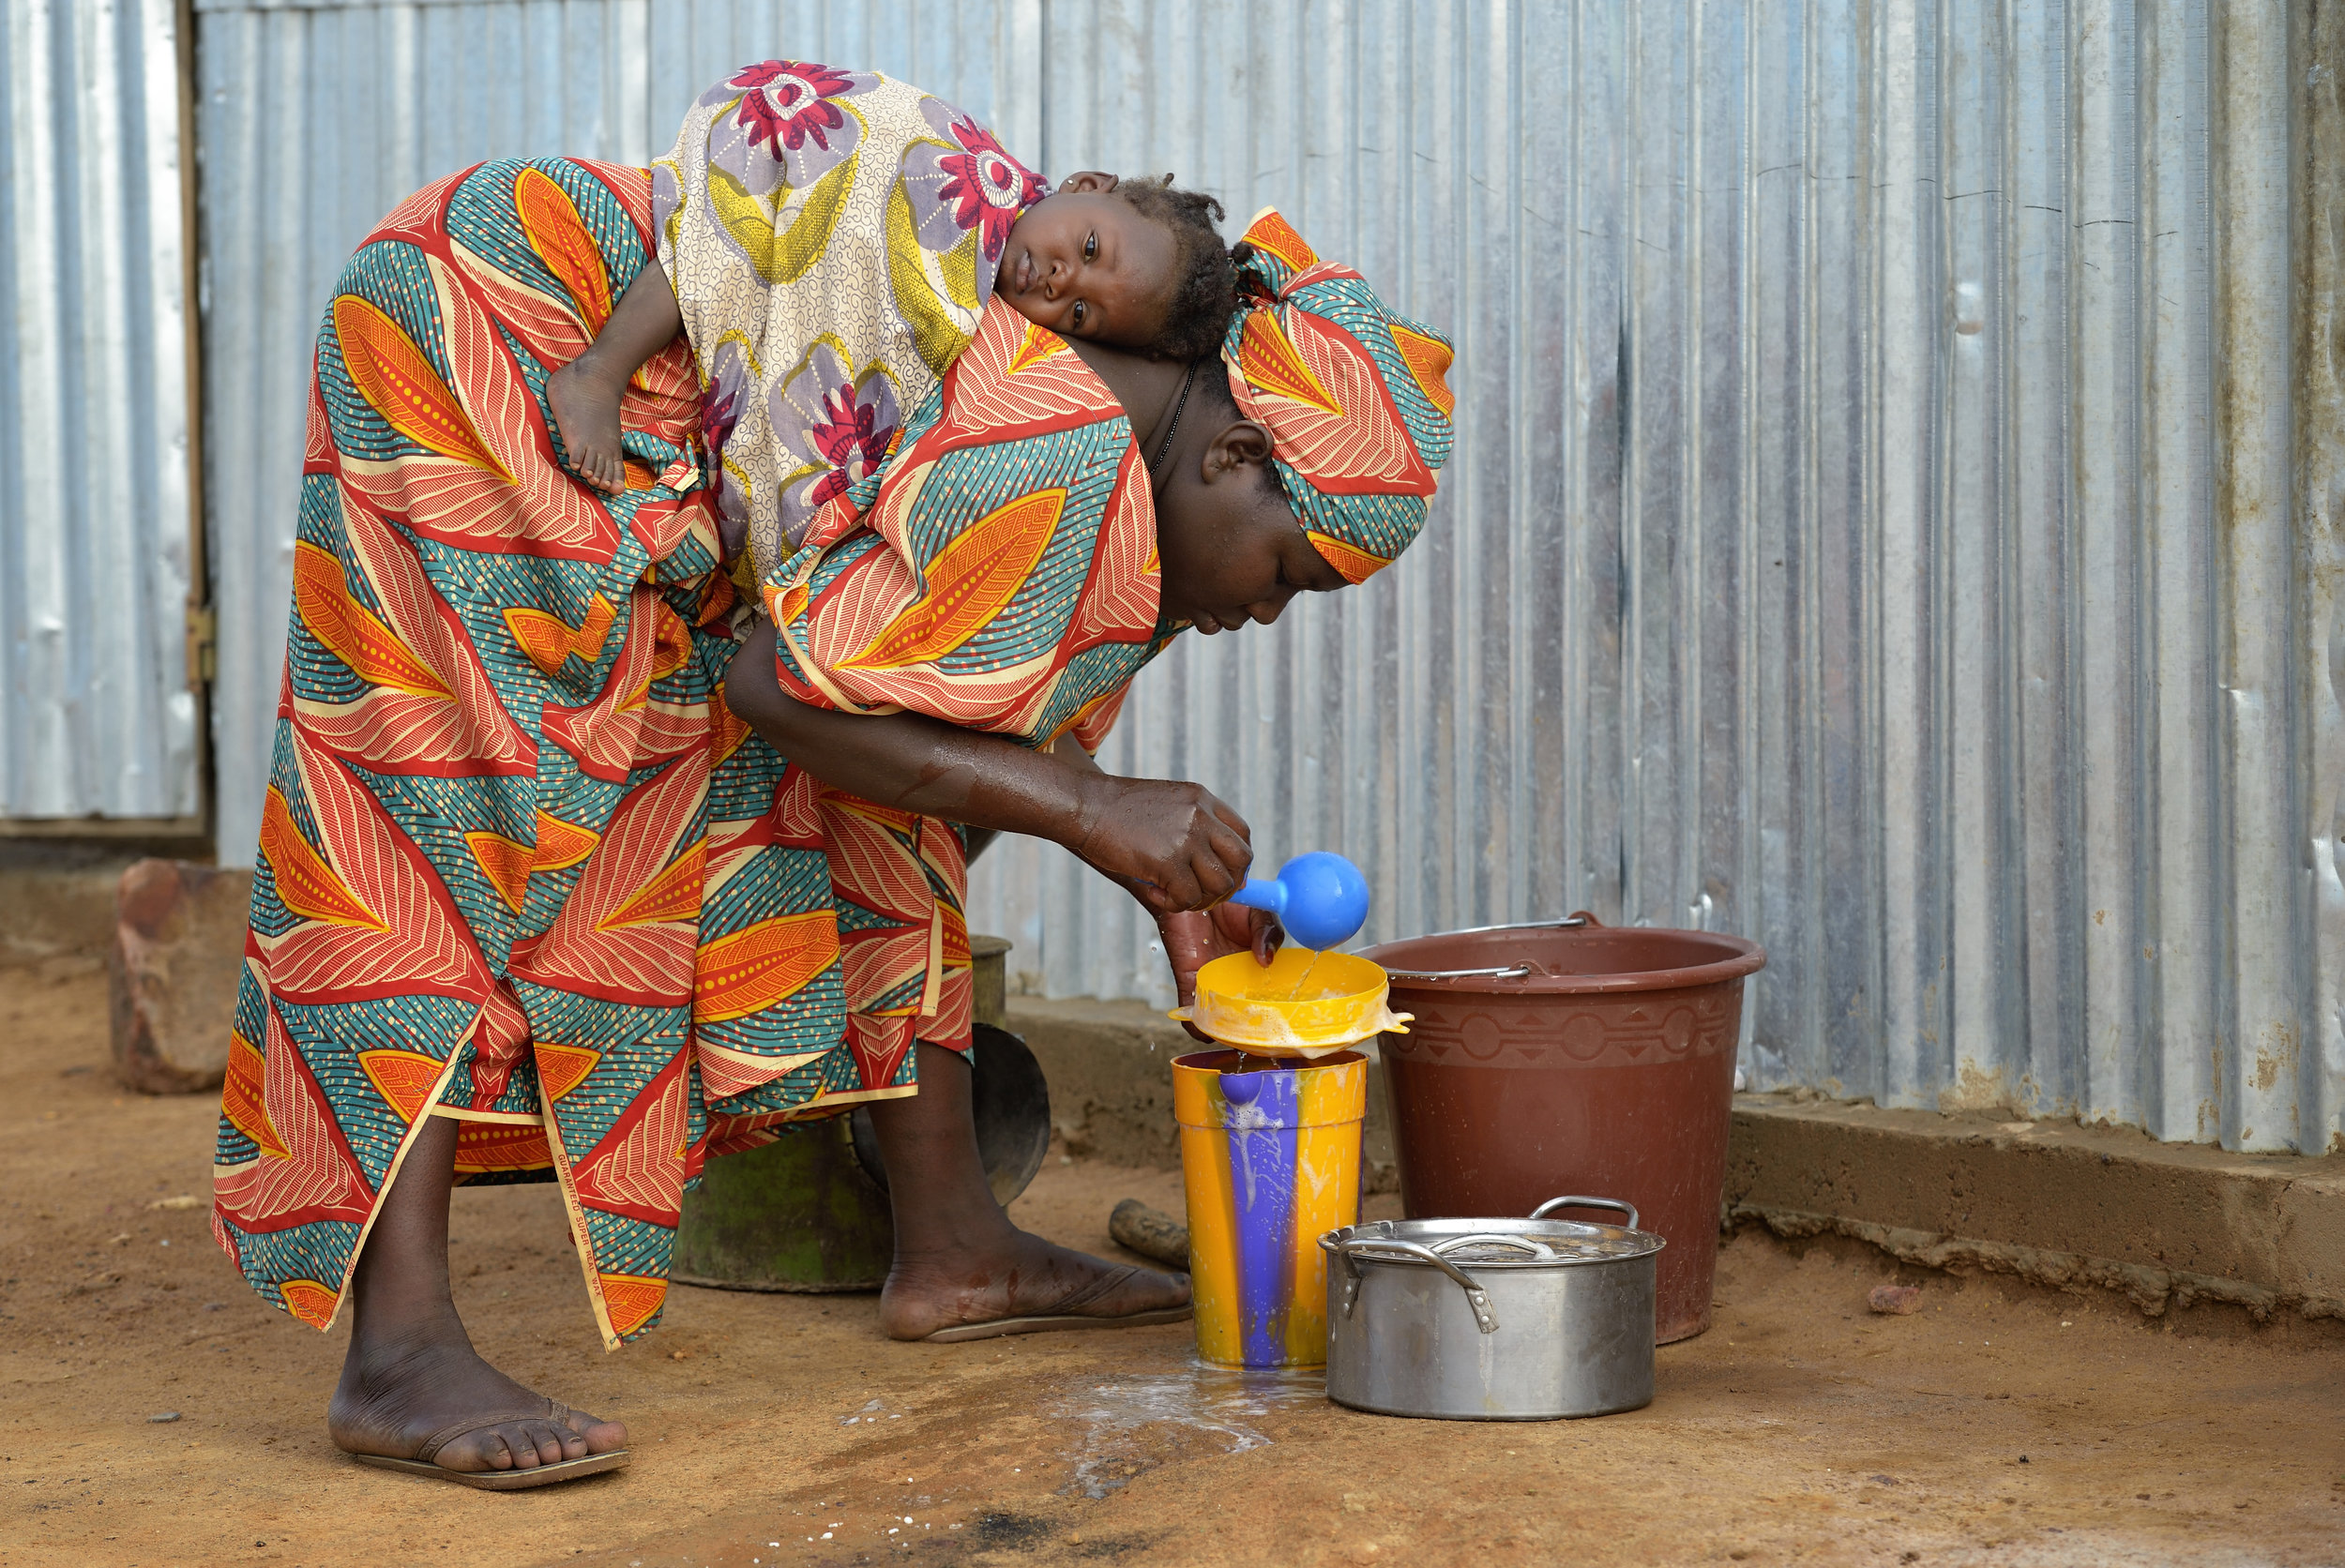 Umu Maiga starts a cooking stove as her one-month old daughter Hosemira rides along in a camp in Mopti, Mali